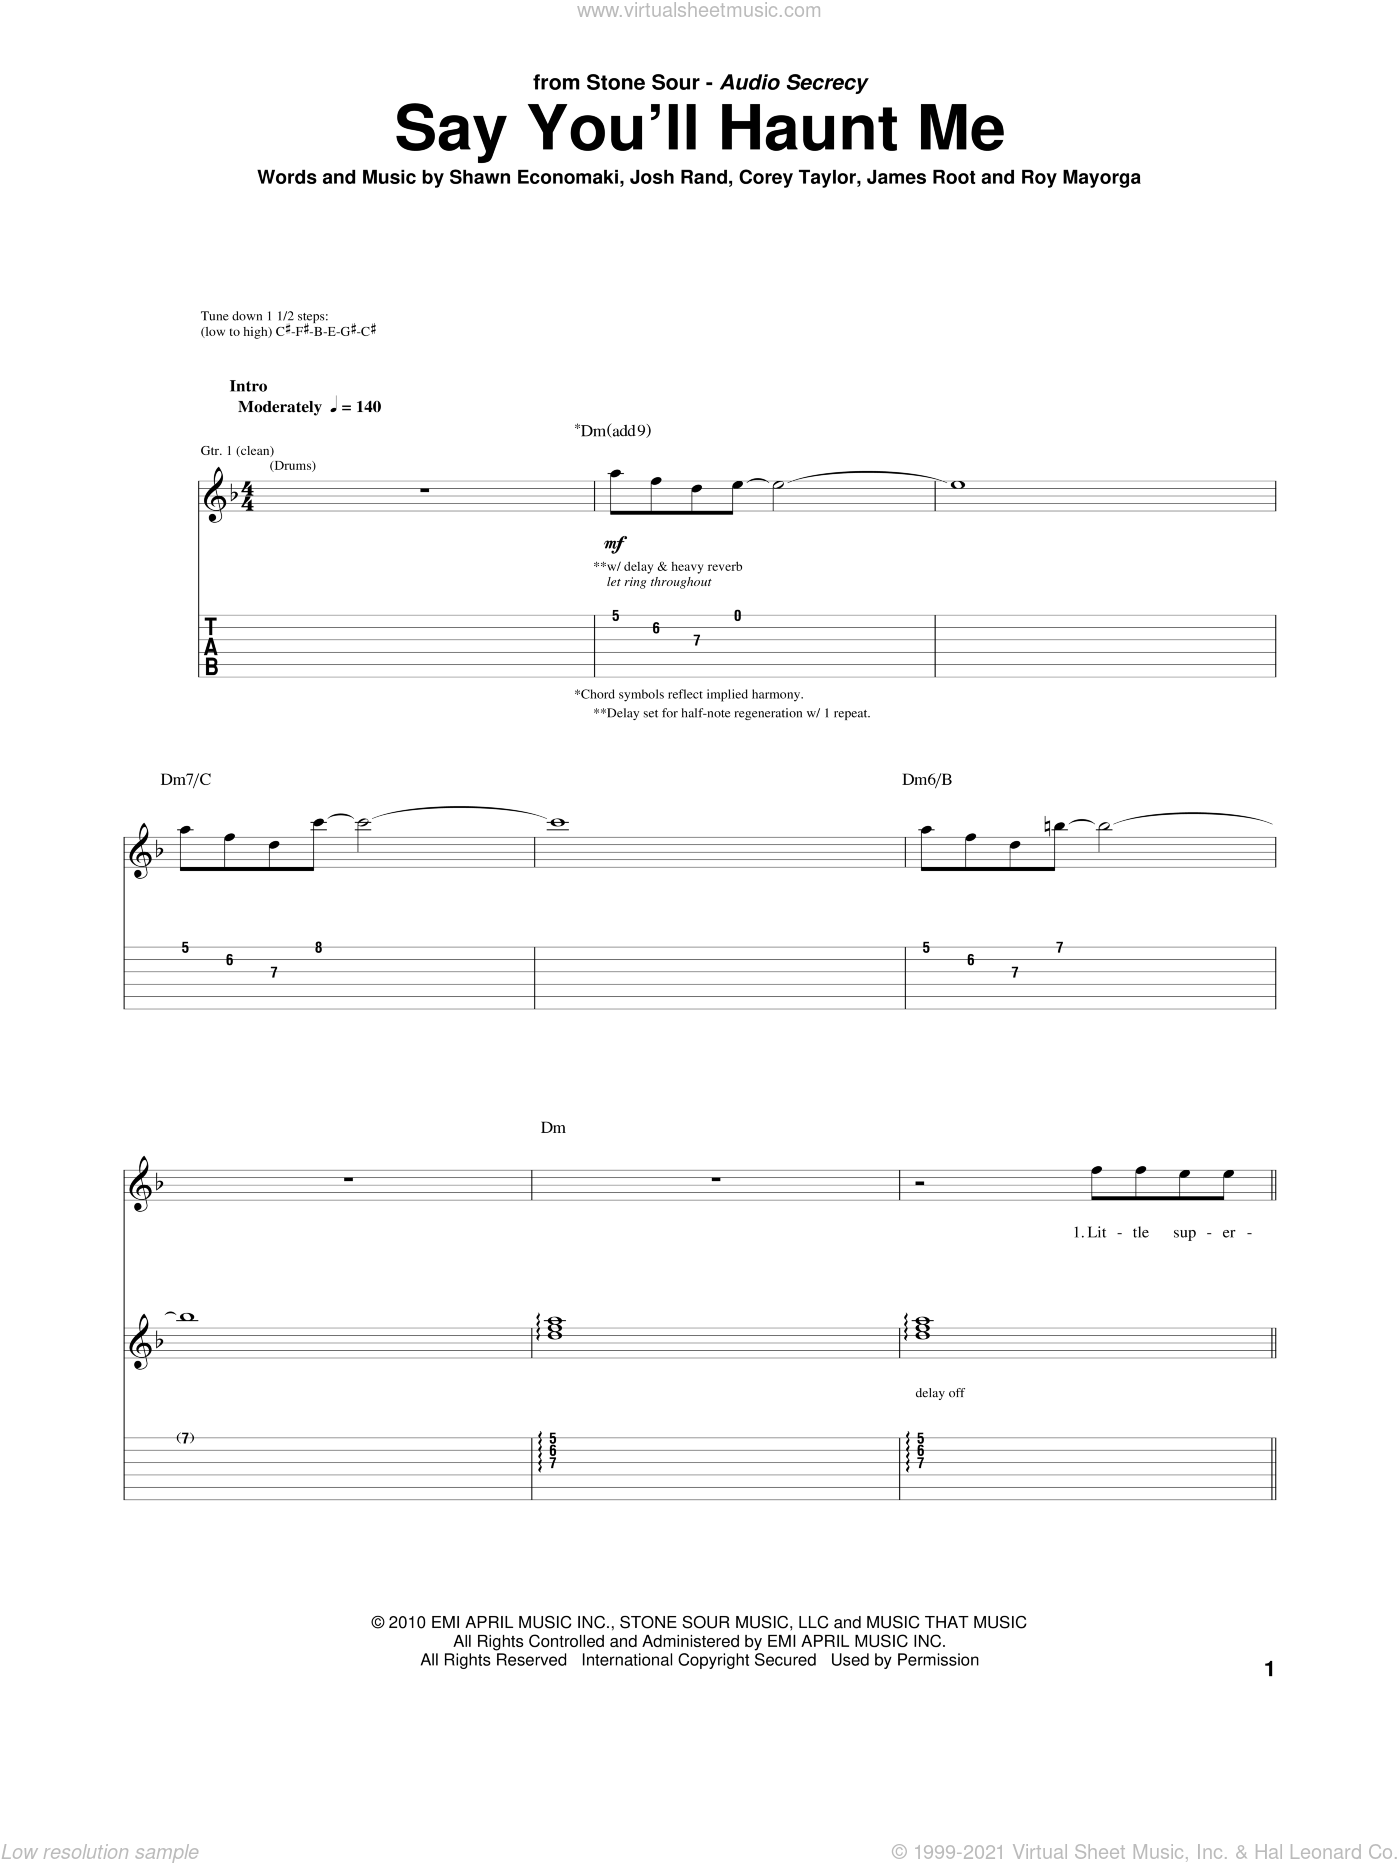 Say You'll Haunt Me sheet music for guitar (tablature) by Stone Sour, Corey Taylor, James Root, Josh Rand, Roy Mayorga and Shawn Economaki, intermediate skill level